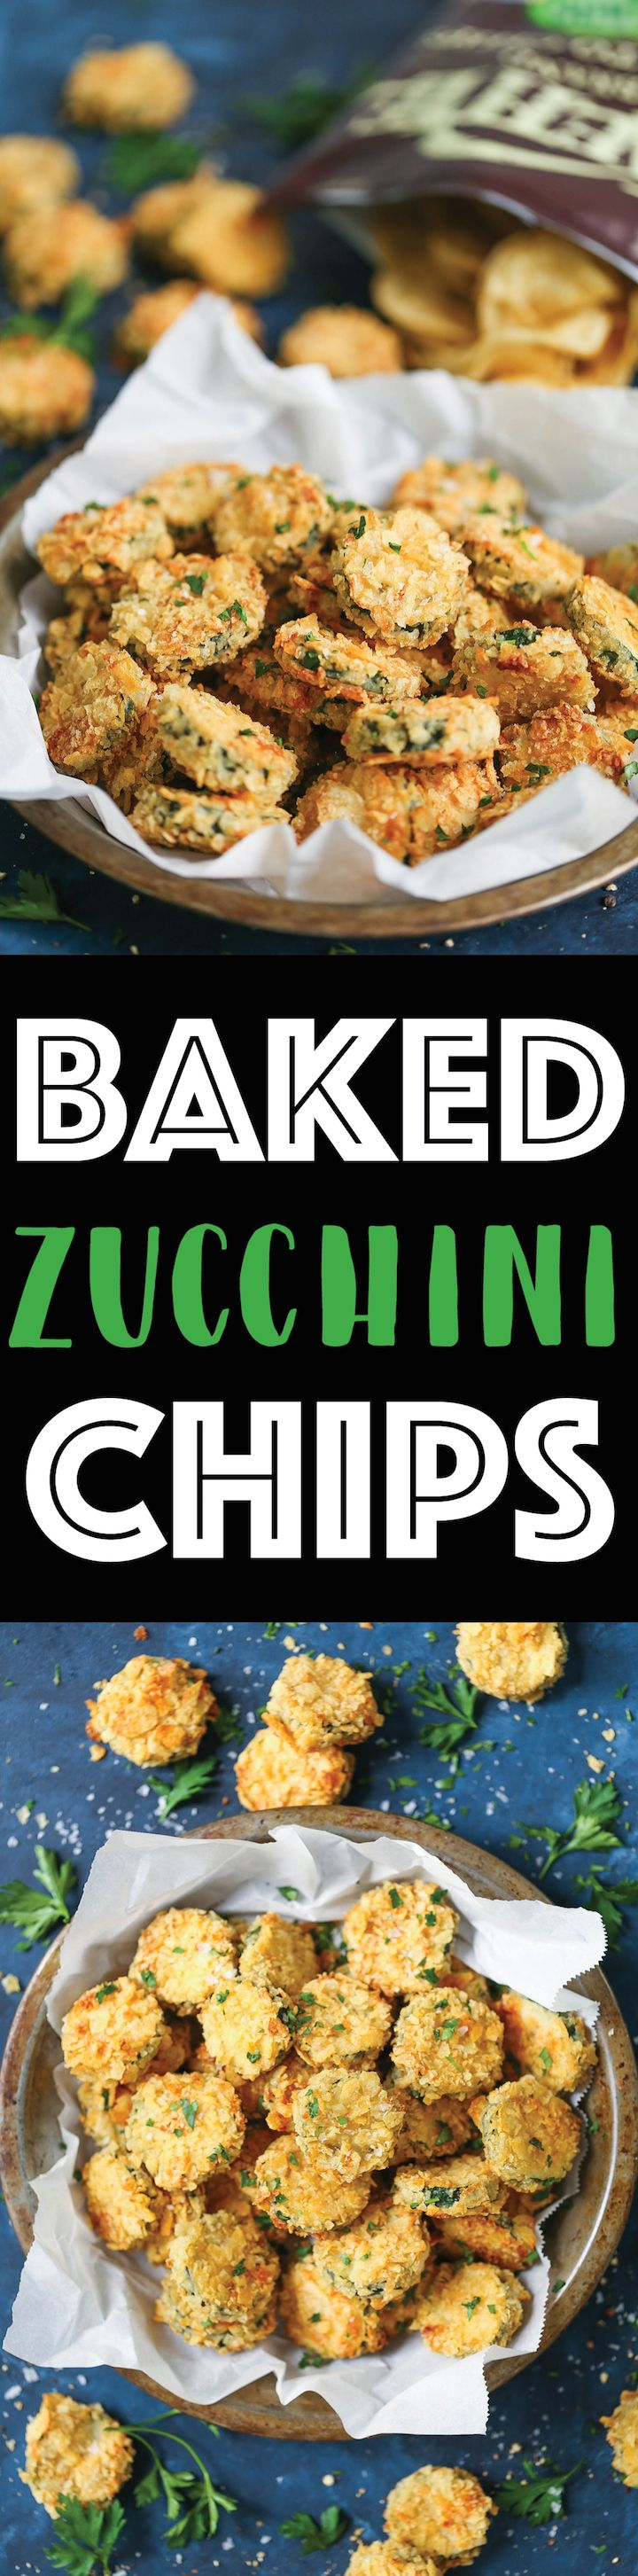 Baked Zucchini Chips - The best zucchini chips EVER! They are perfectly seasoned and perfectly crunchy and crisp even though these are completely BAKED! You will not even be able to tell the difference. Promise!